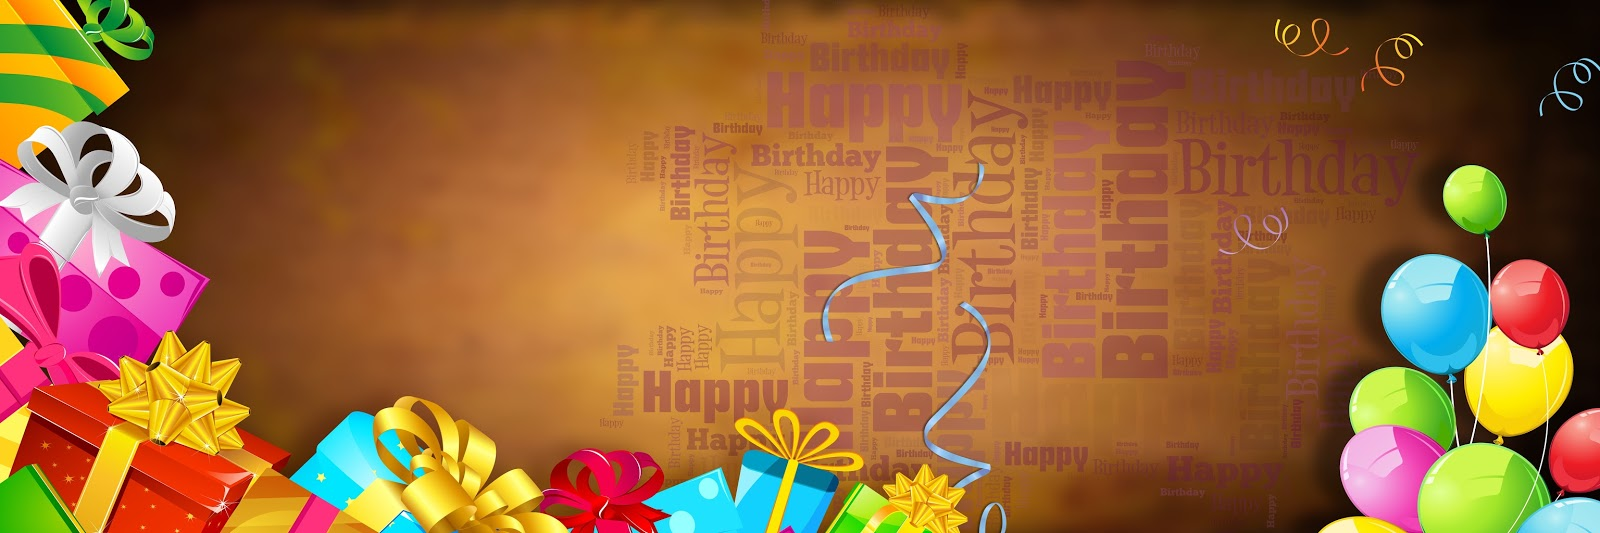 birthday album backgrounds hd ; DIGGIMAGE